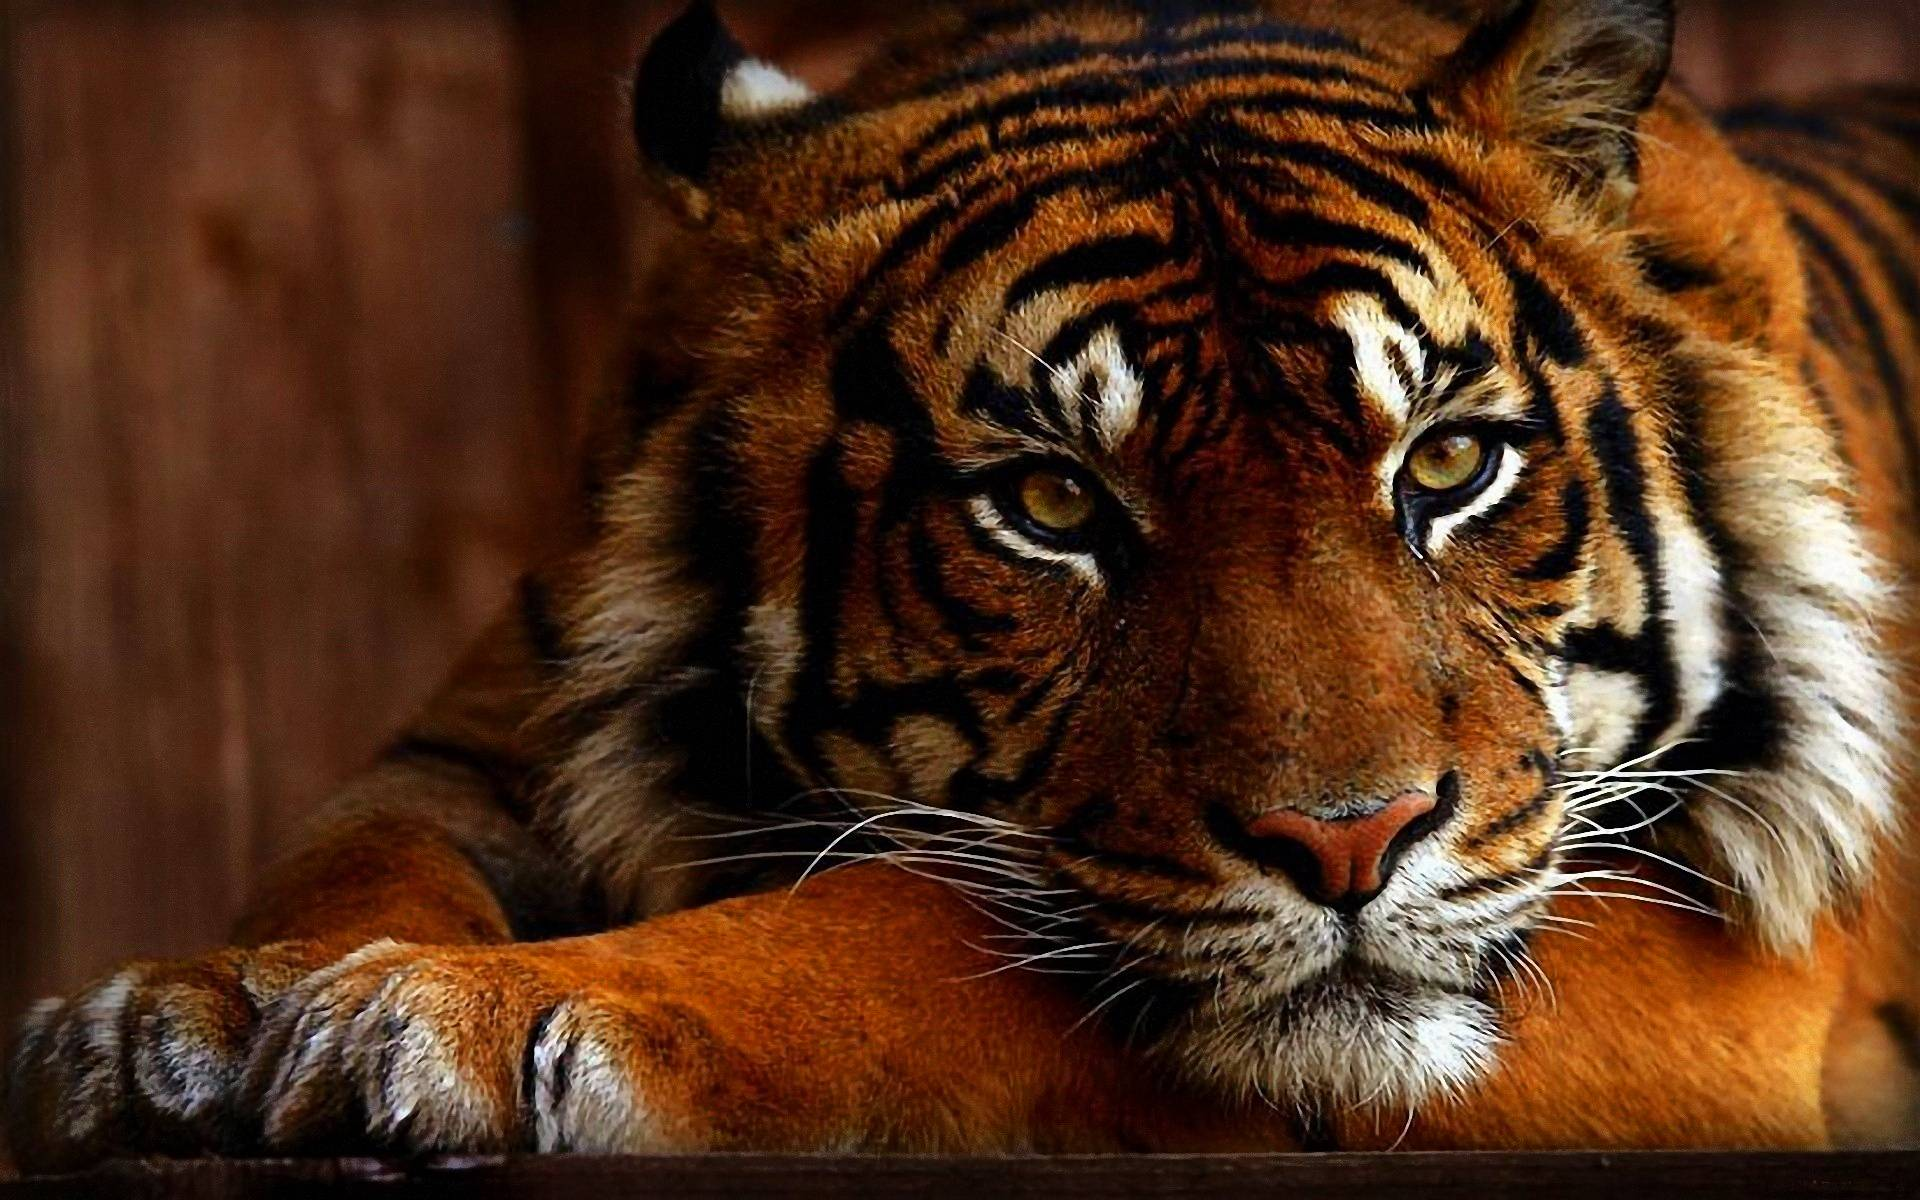 Wallpaper HD Tiger 73 172042 High Definition Wallpapers| wallalay.